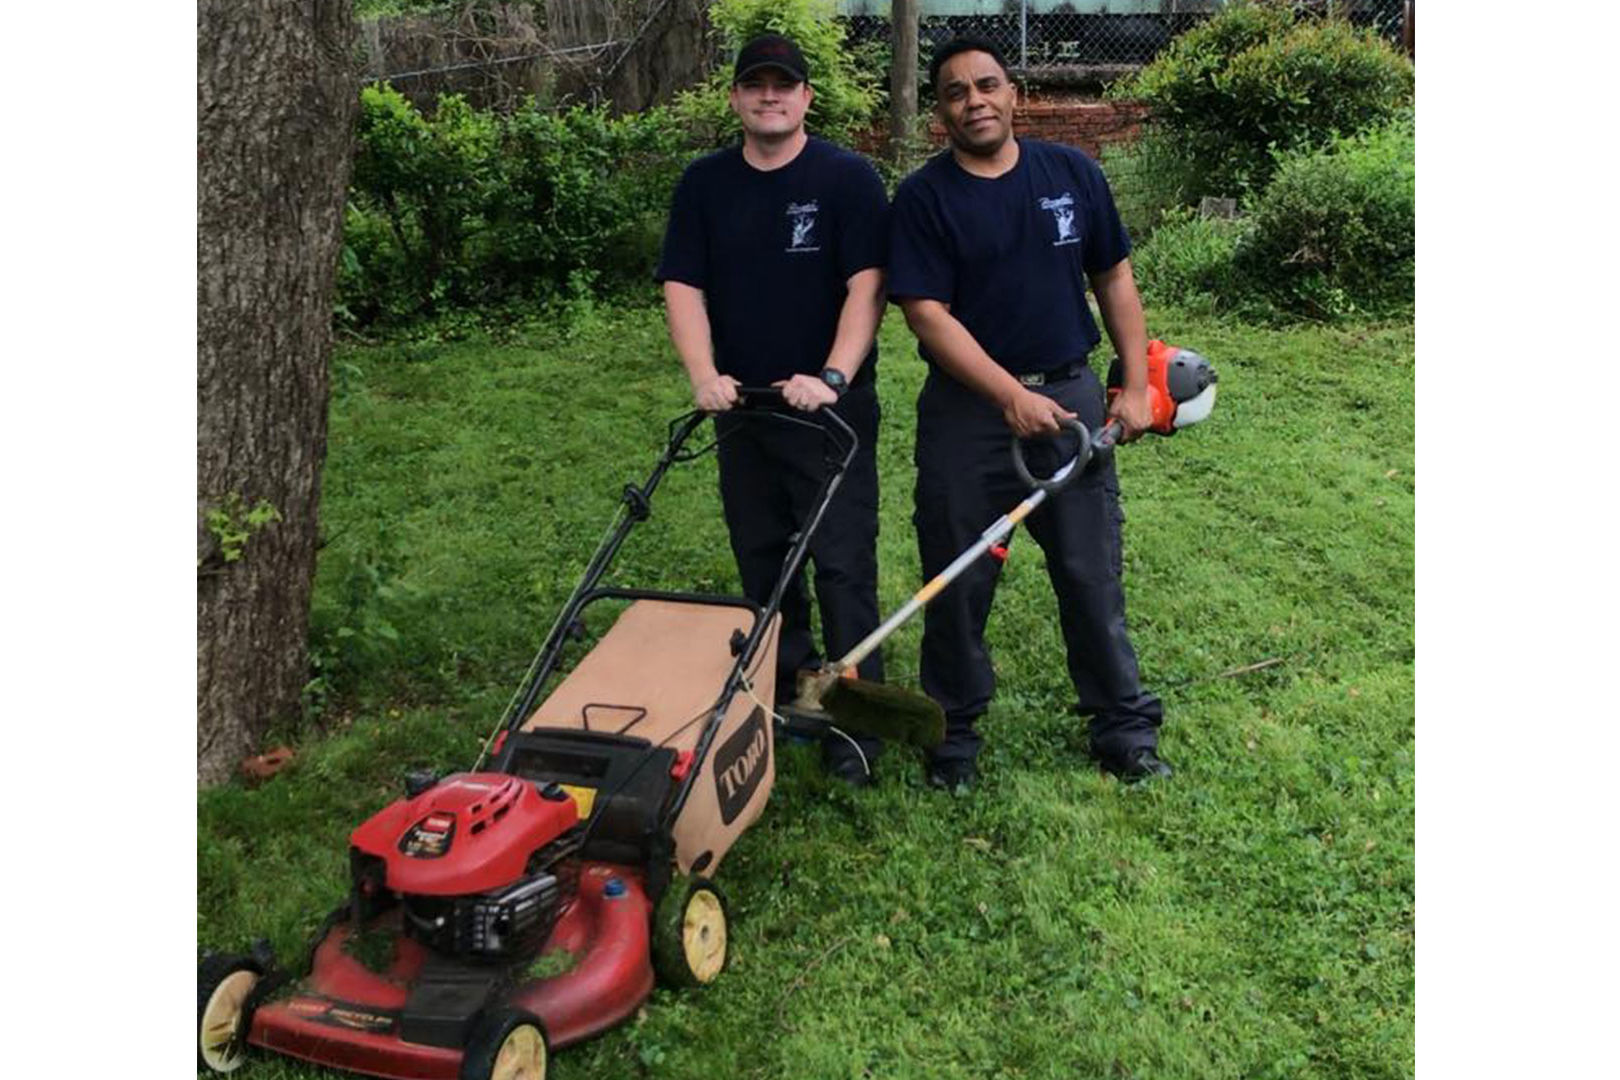 After Responding to Veteran's Call, Alabama Firefighters Return to Mow His Lawn